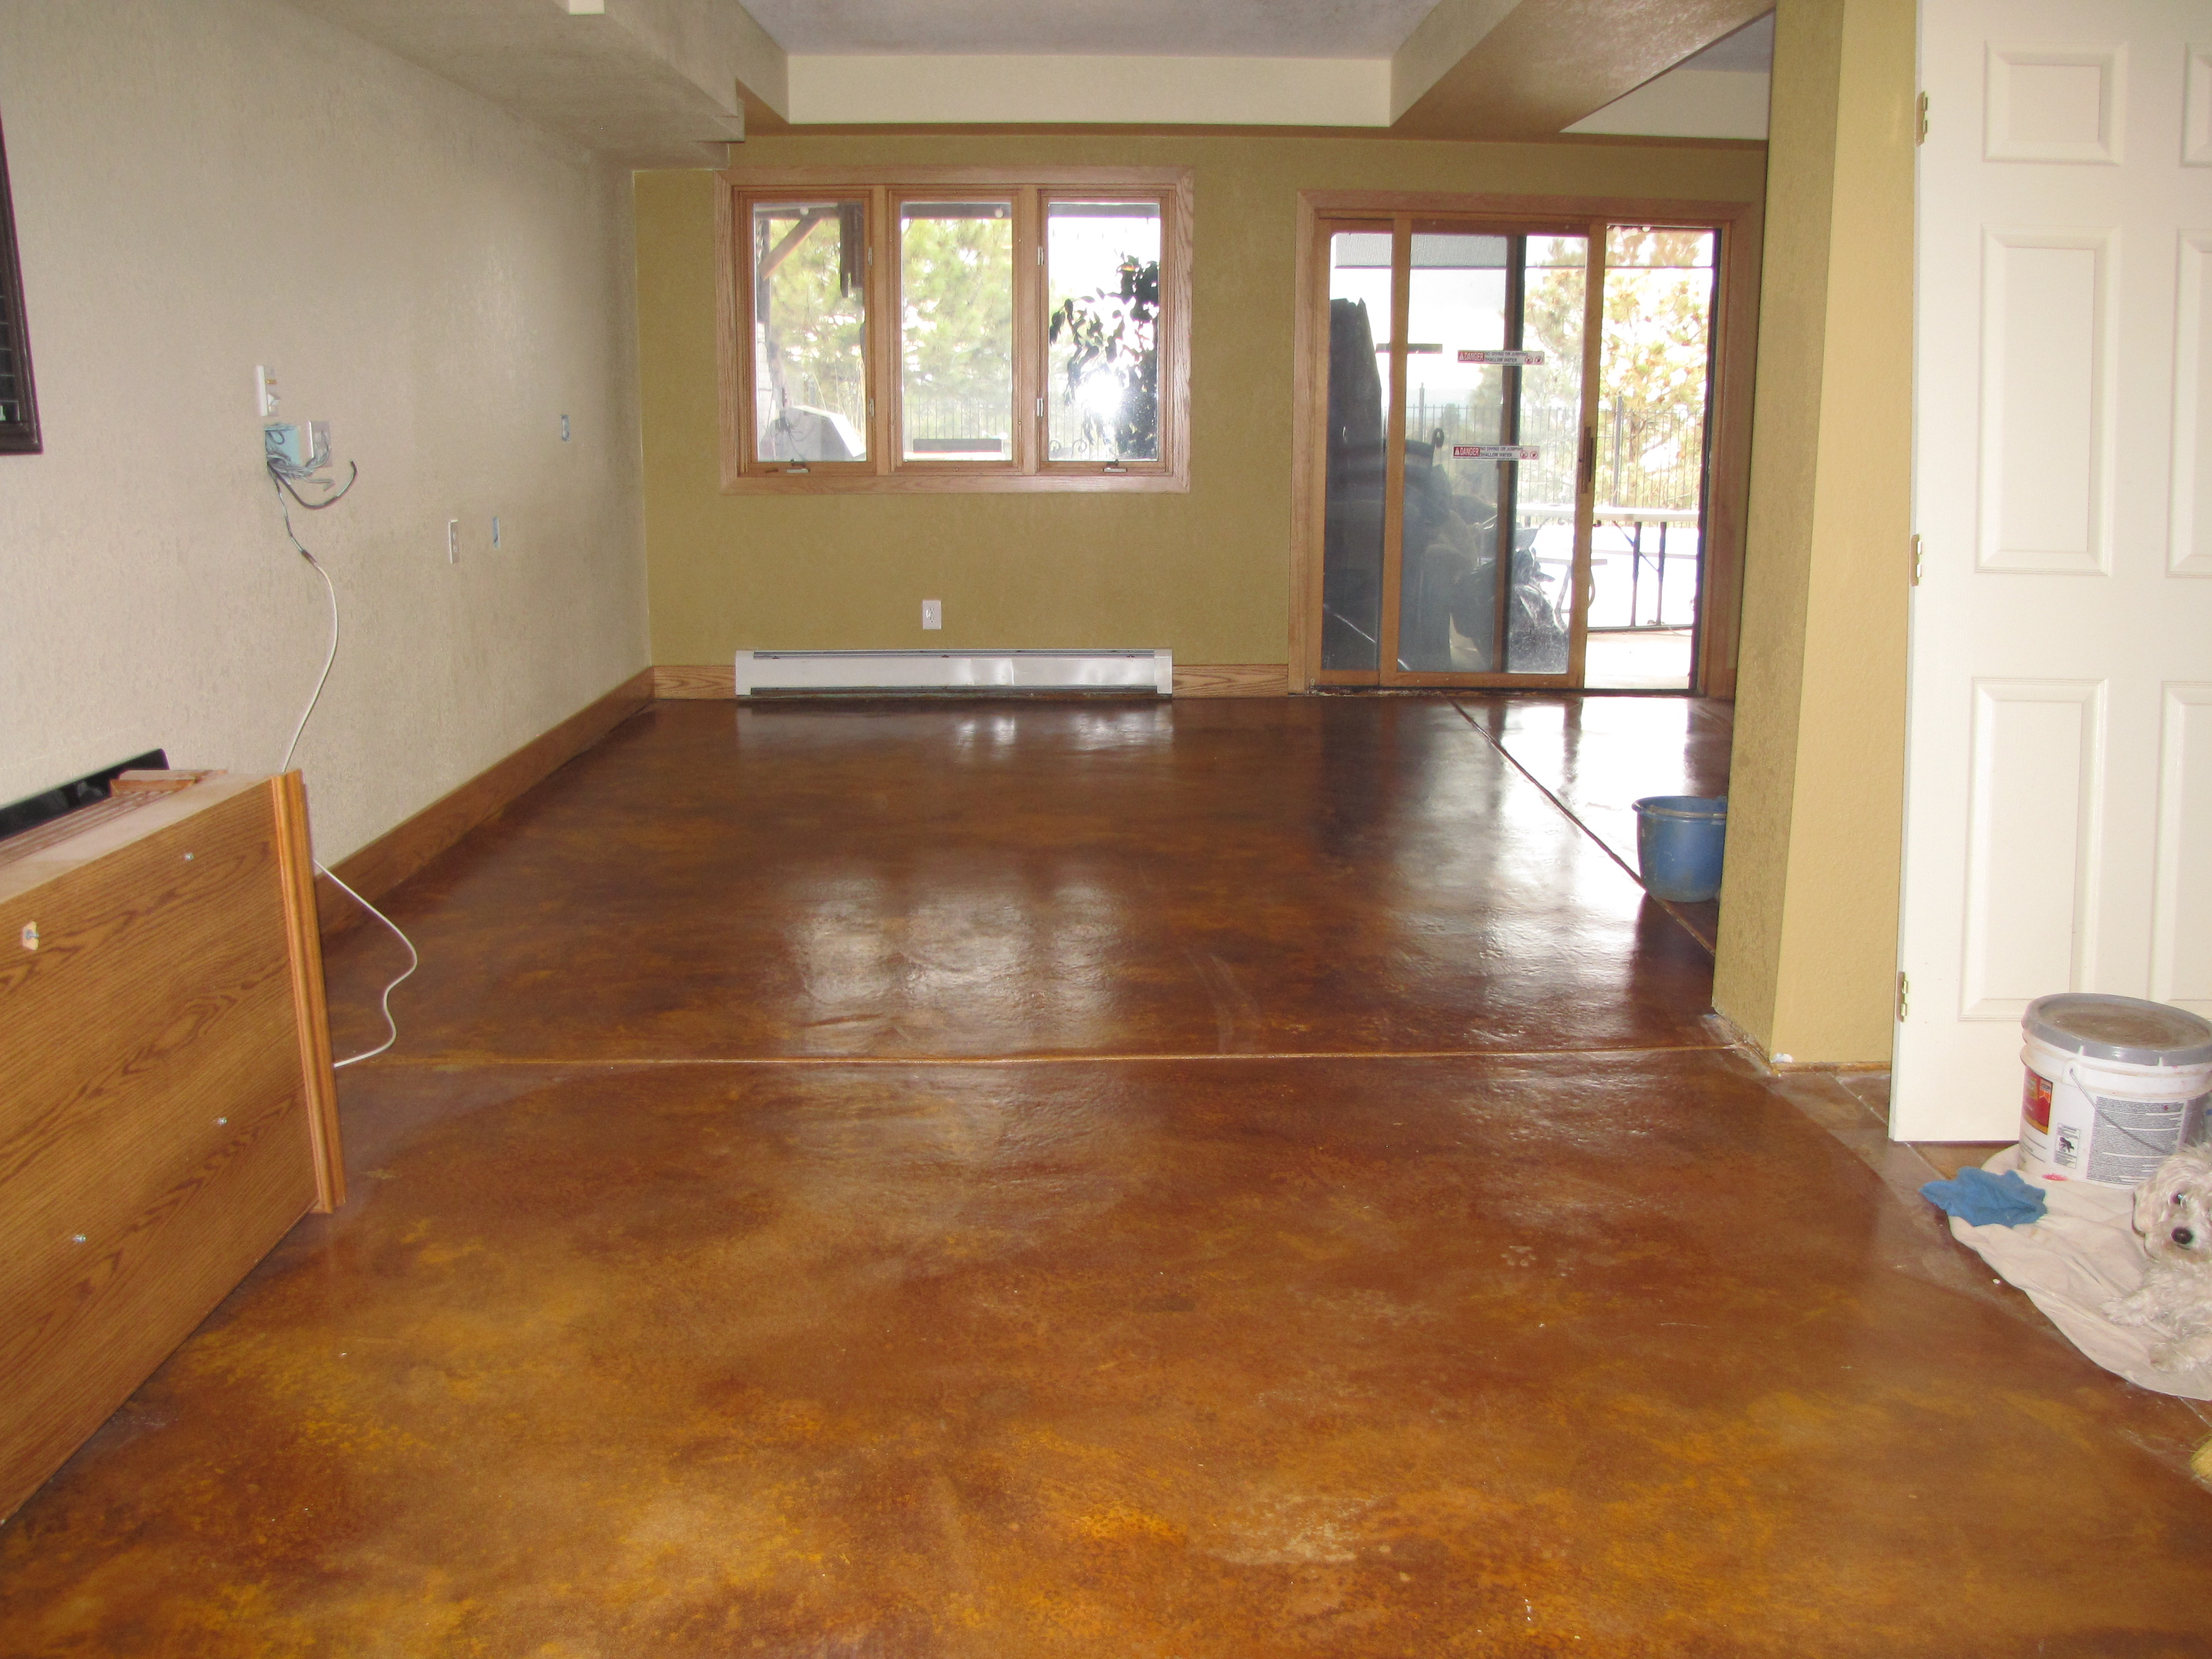 Basement Floor Finished New Paint (Image 1 of 10)